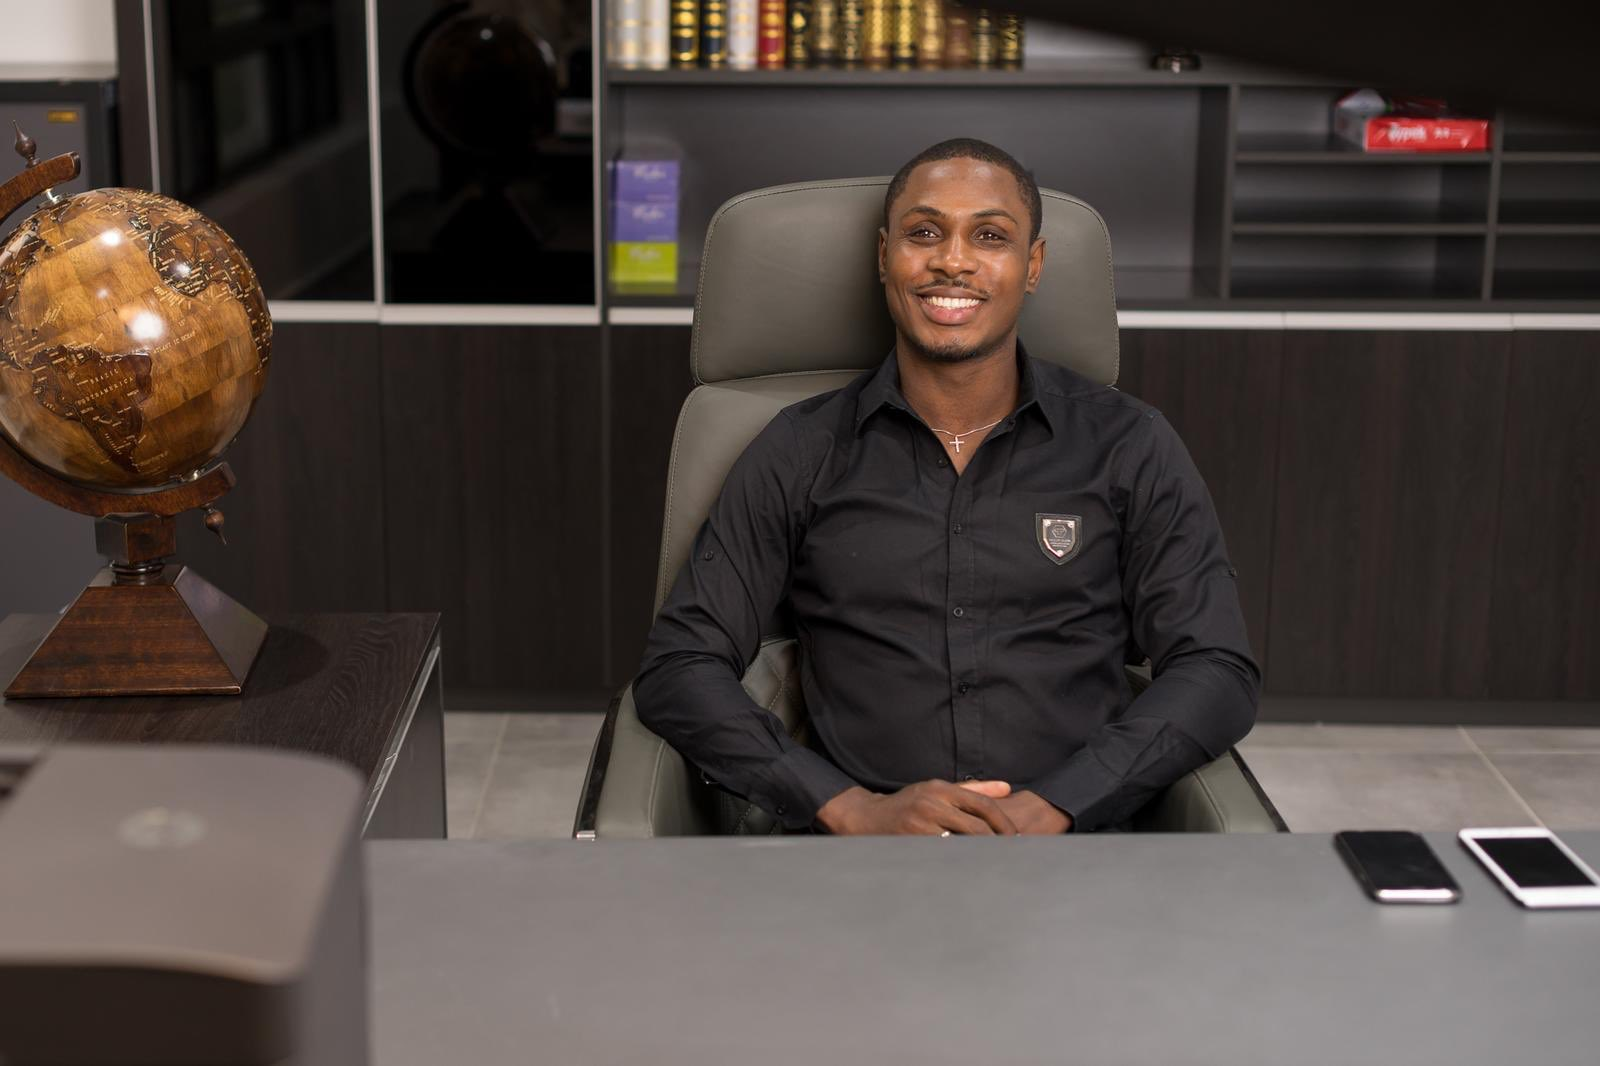 Ighalo gives away N10m on social media, promises same for Ghana fans